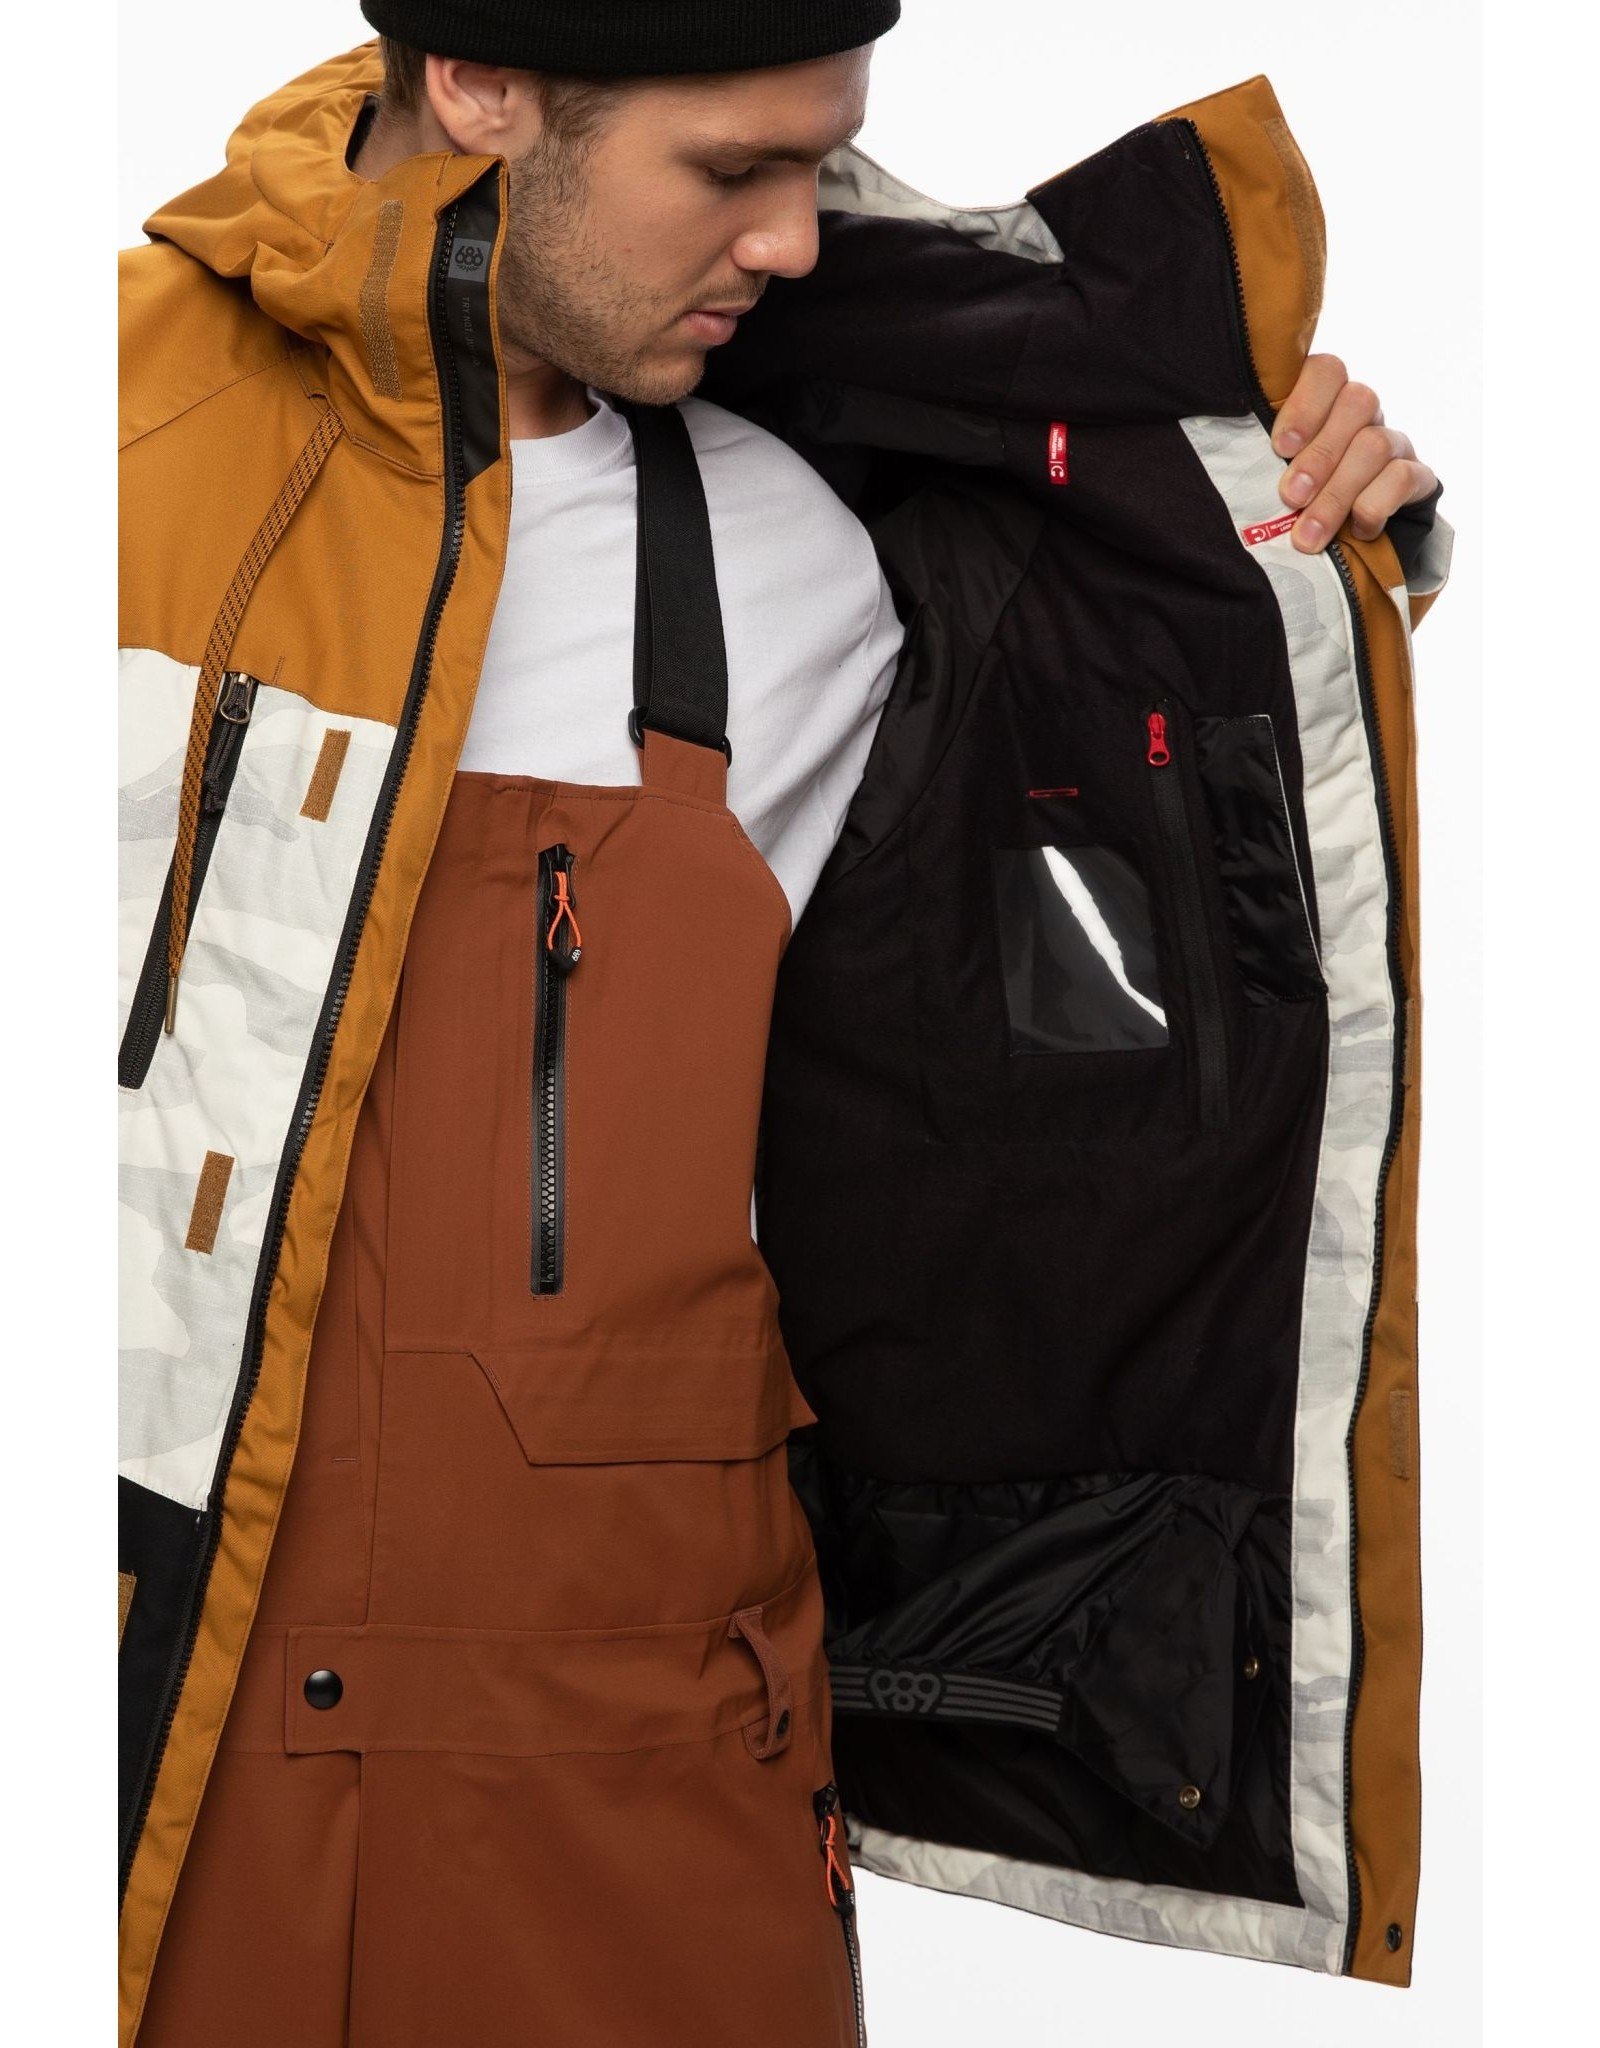 686 686 - Manteau geo insulated golden brown colorblock